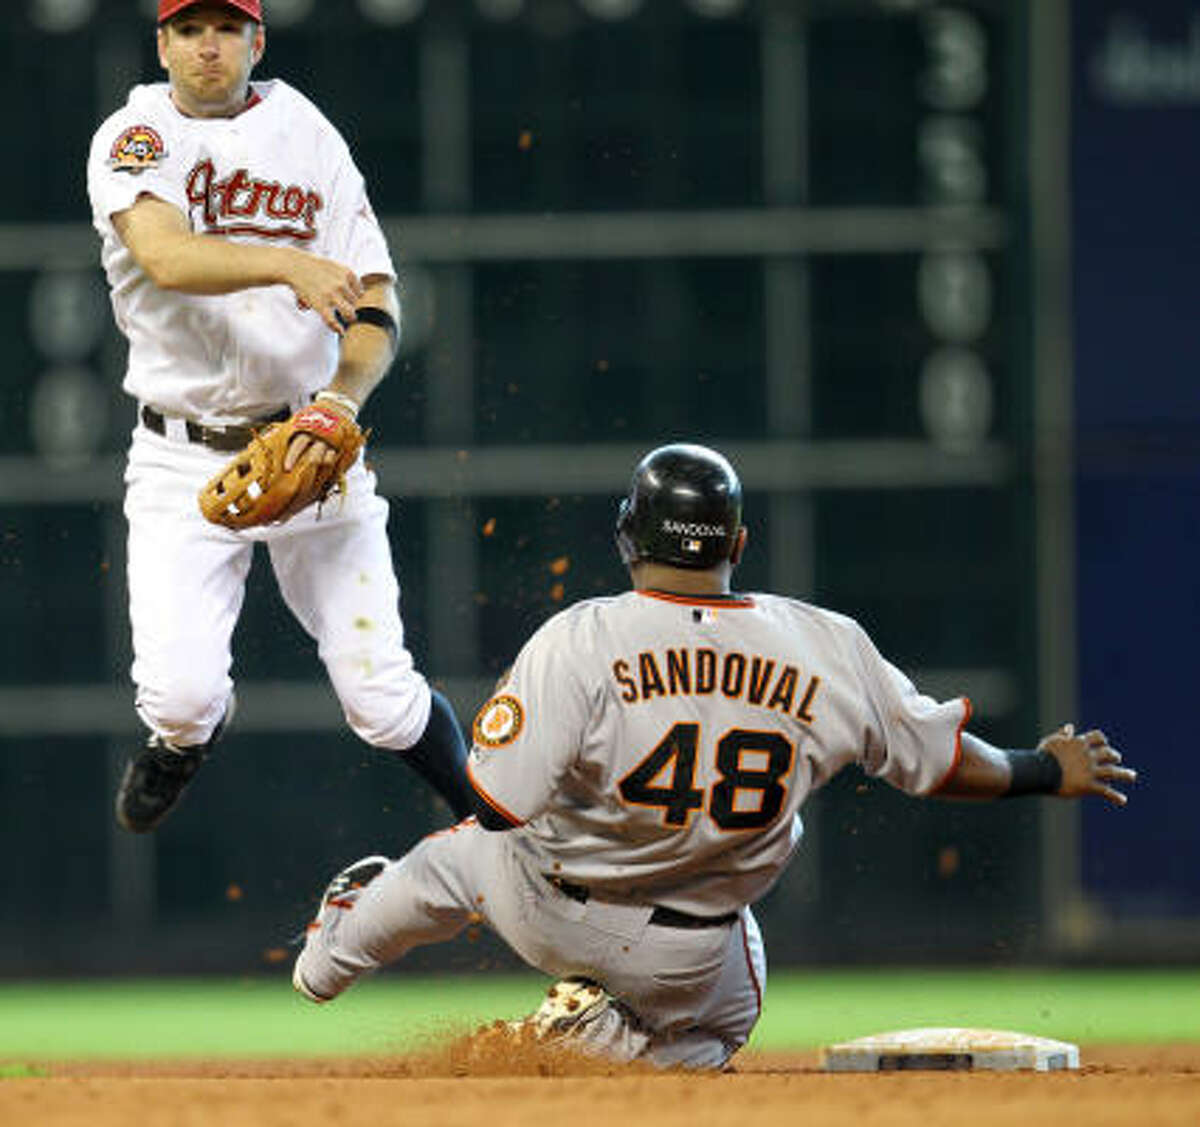 Astros' shortstop Jeff Keppinger tags out Pablo Sandoval at second base during the fifth inning.